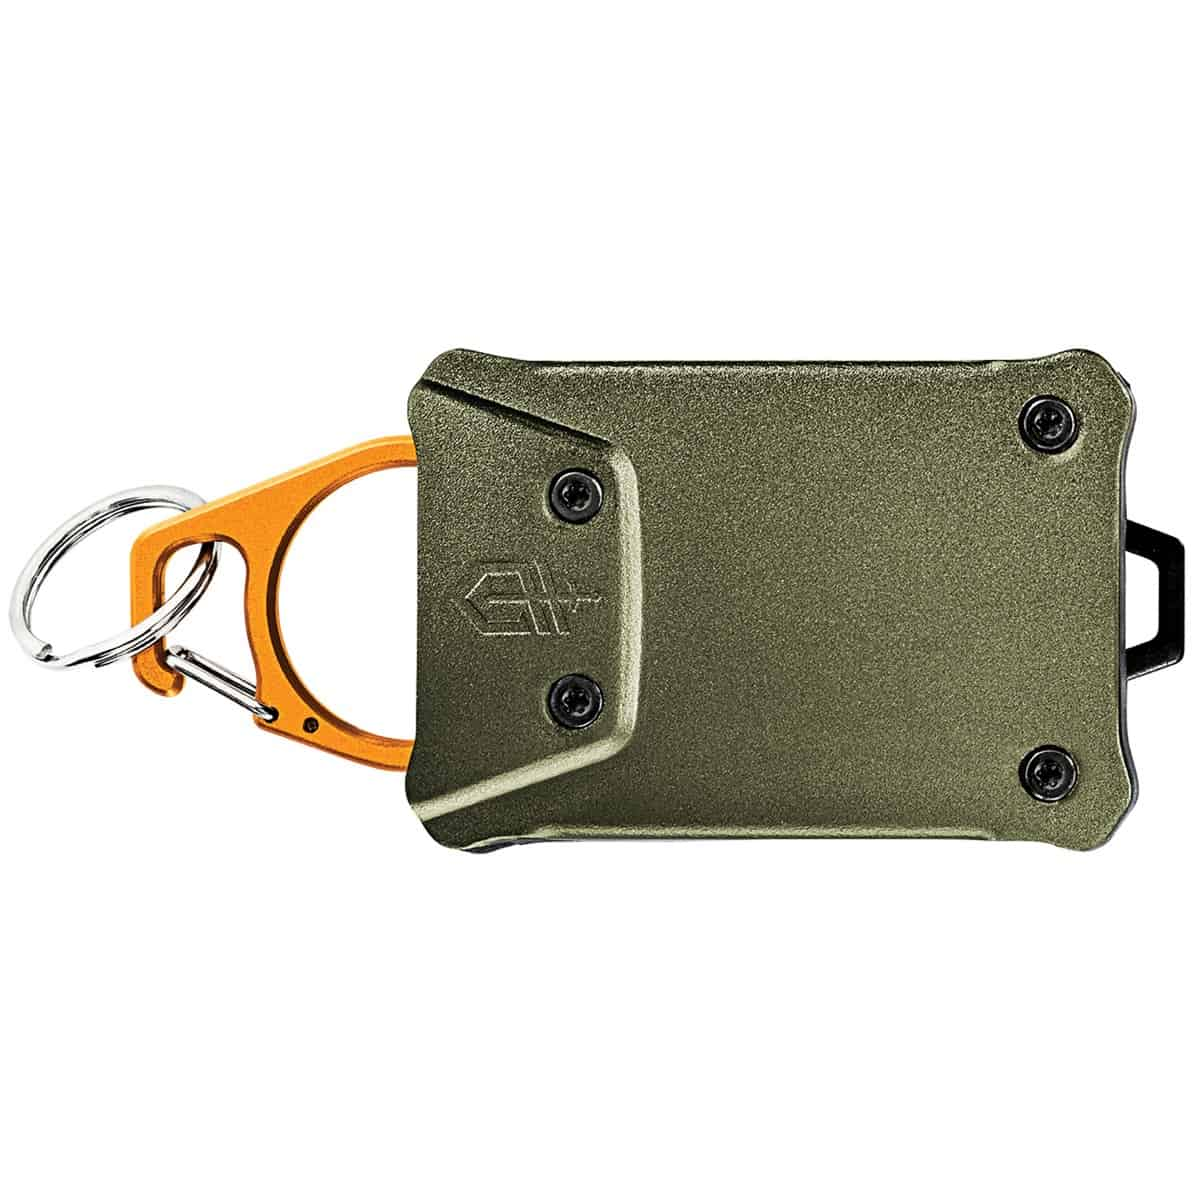 Gerber Defender Tether Compact S